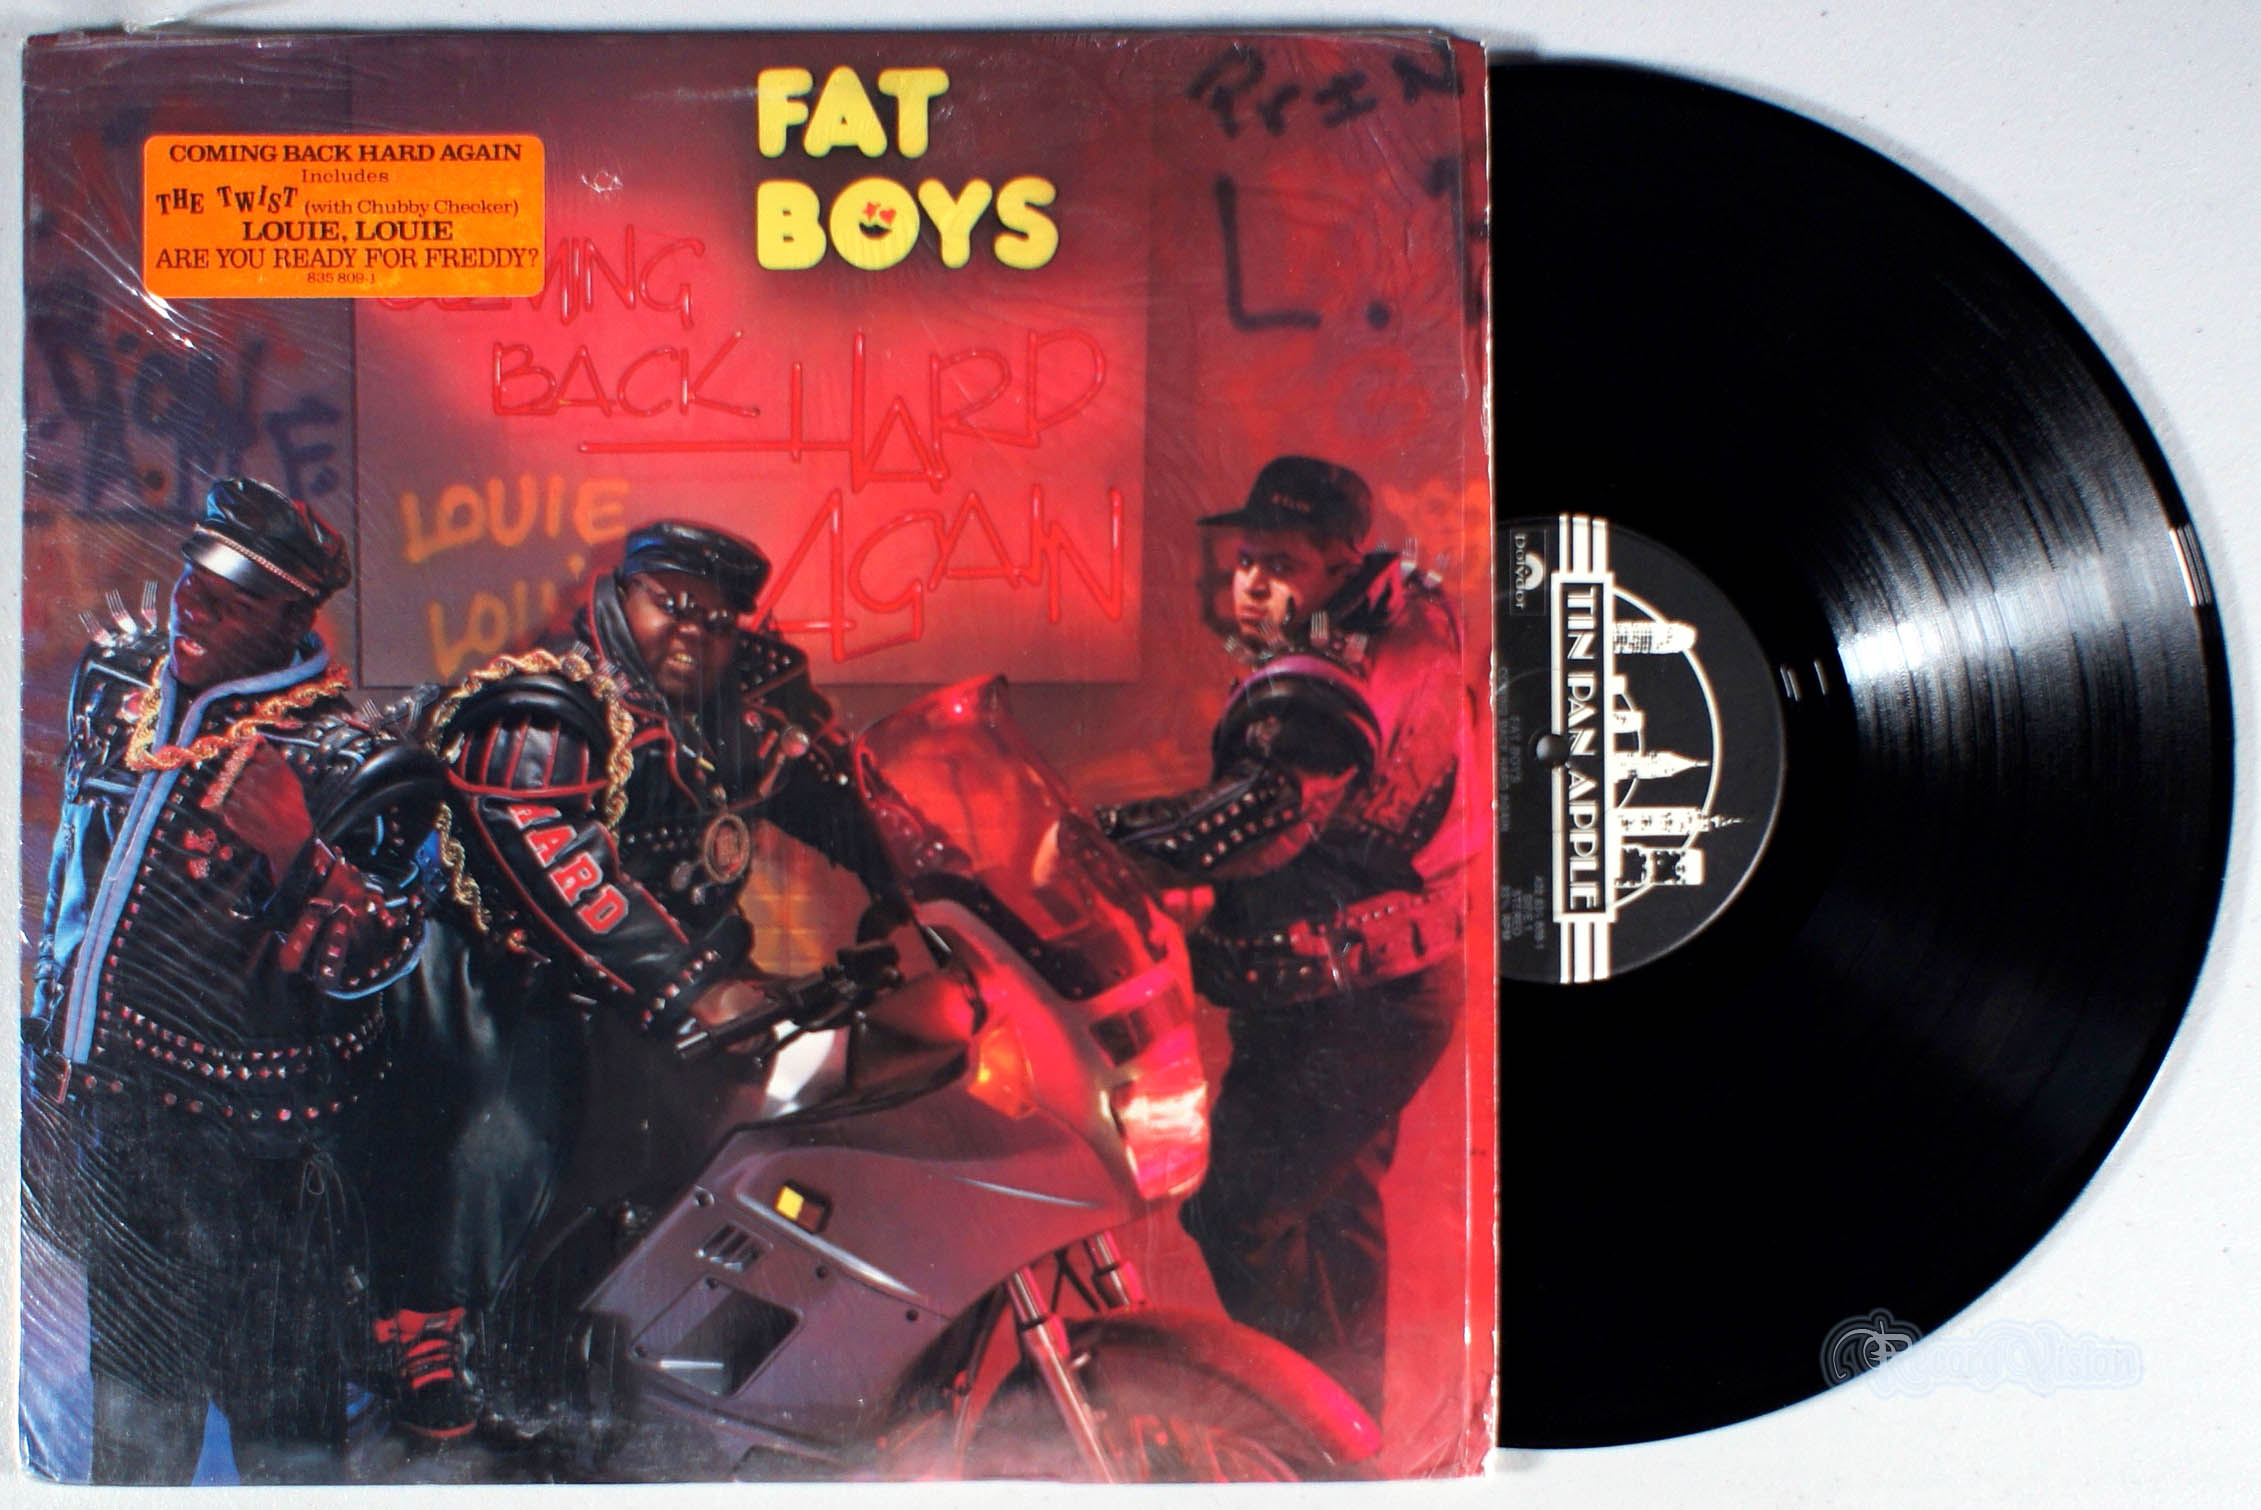 FAT BOYS - Coming Back Hard Again - LP